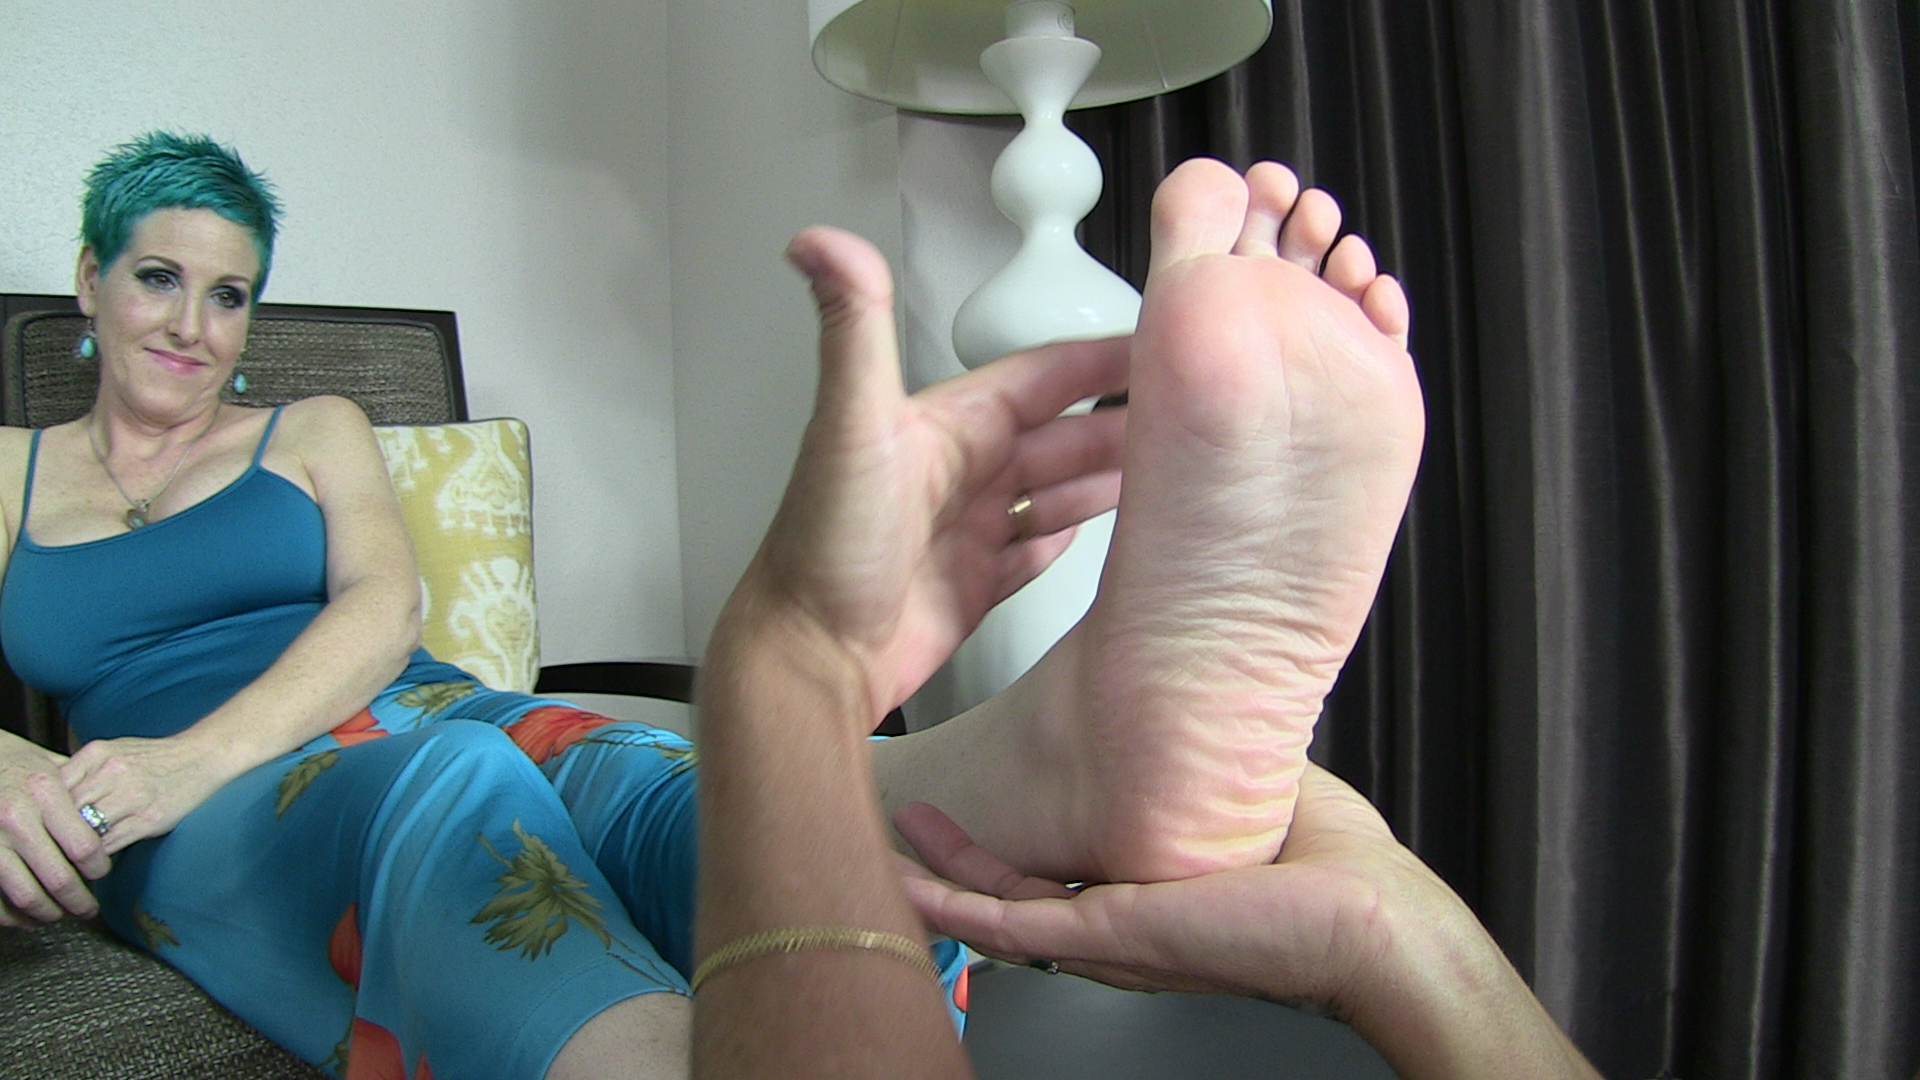 Milf wrinkled soles in your happy face no sound - 1 part 5